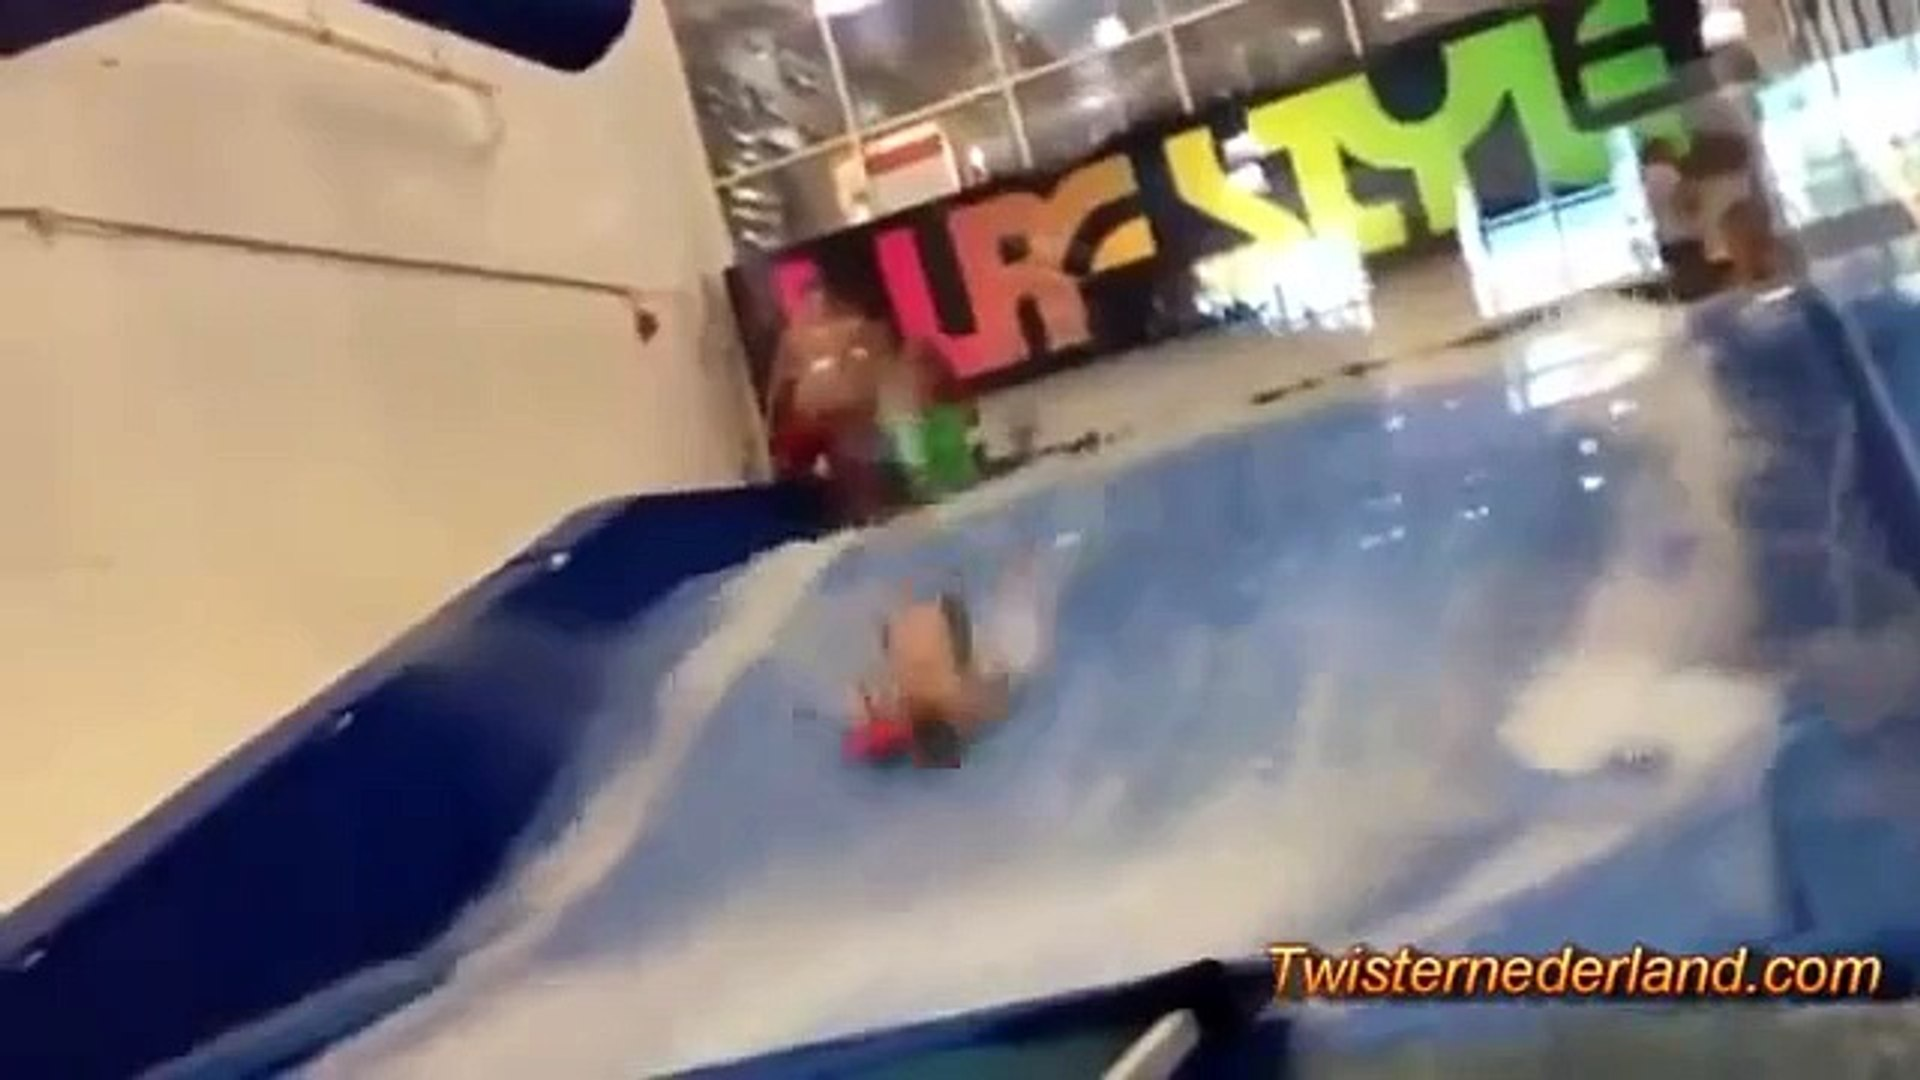 Clip humor - humor that accident in 2013